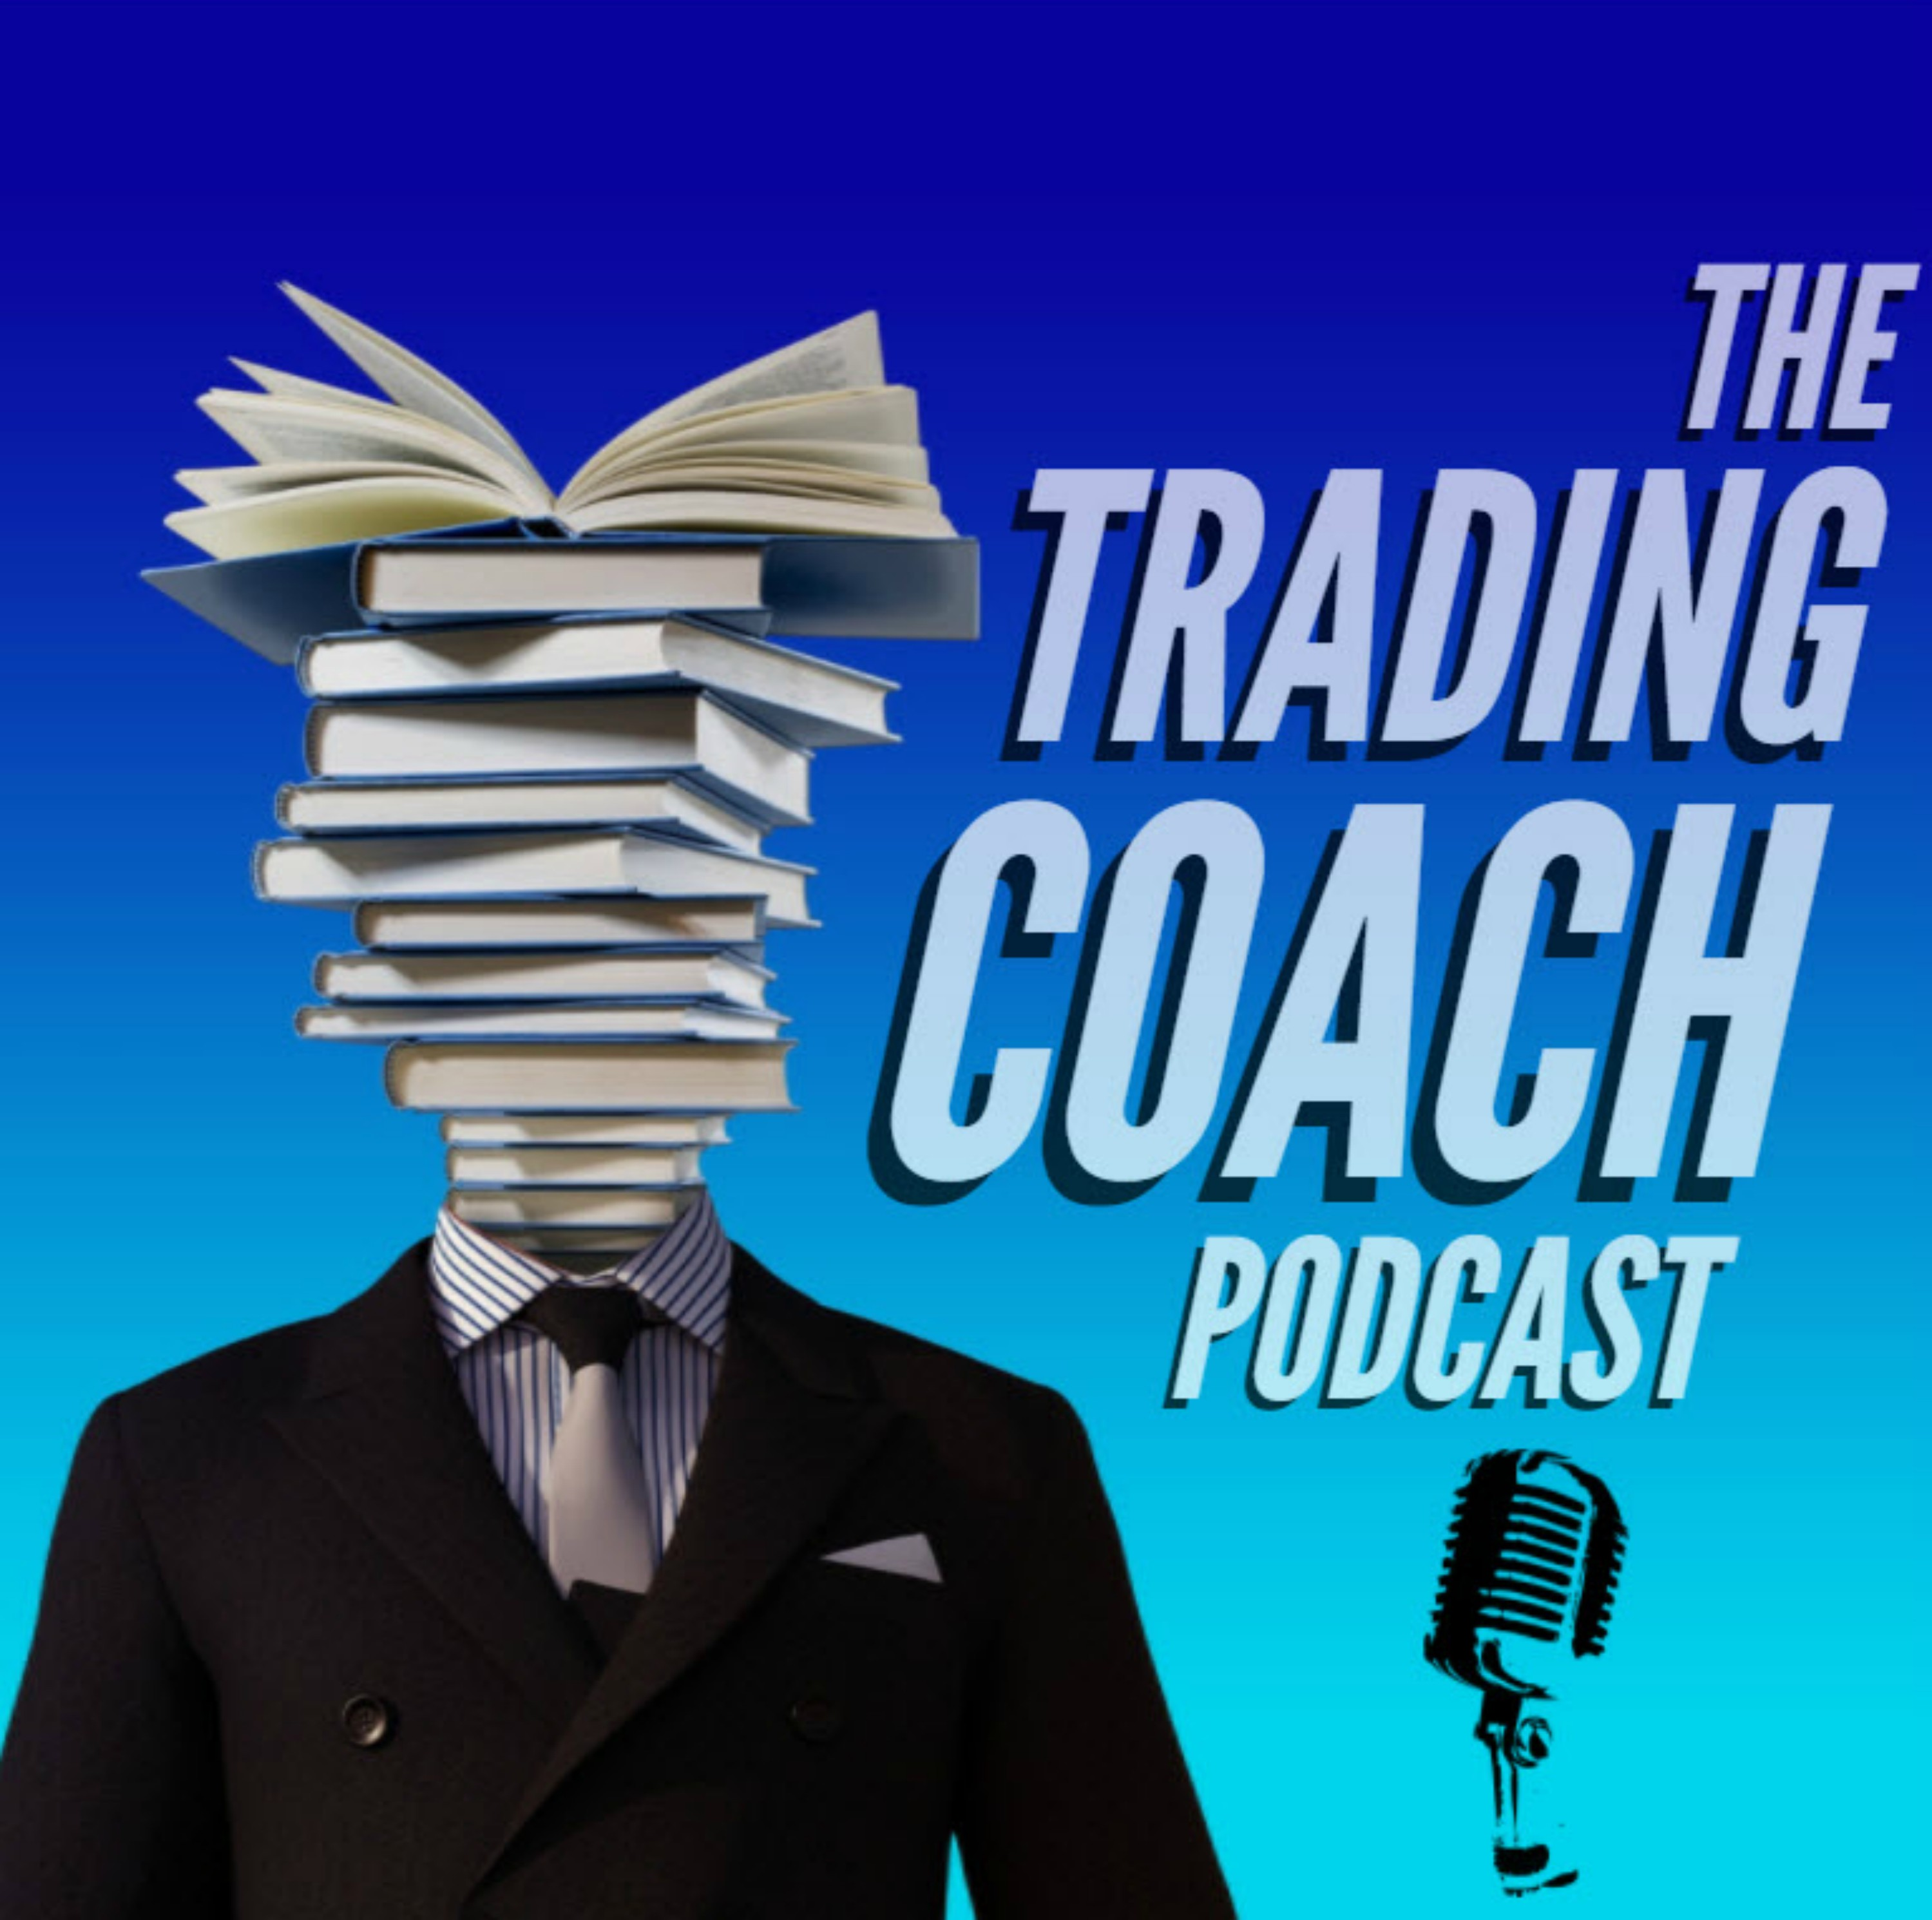 The Trading Coach Podcast show art